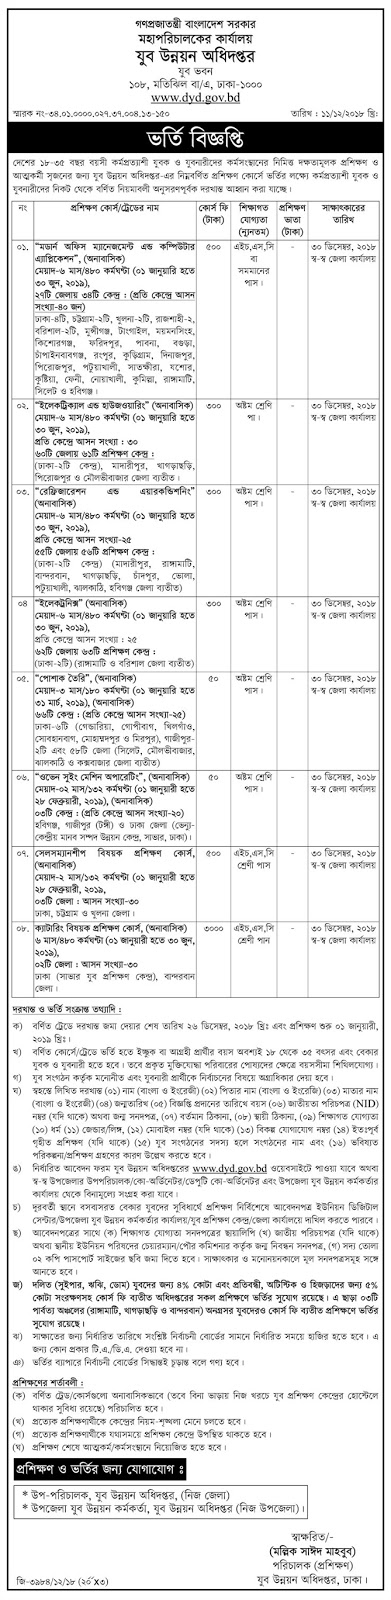 Department of Youth Development (dyd) January-June 2019 Session Admission Circular